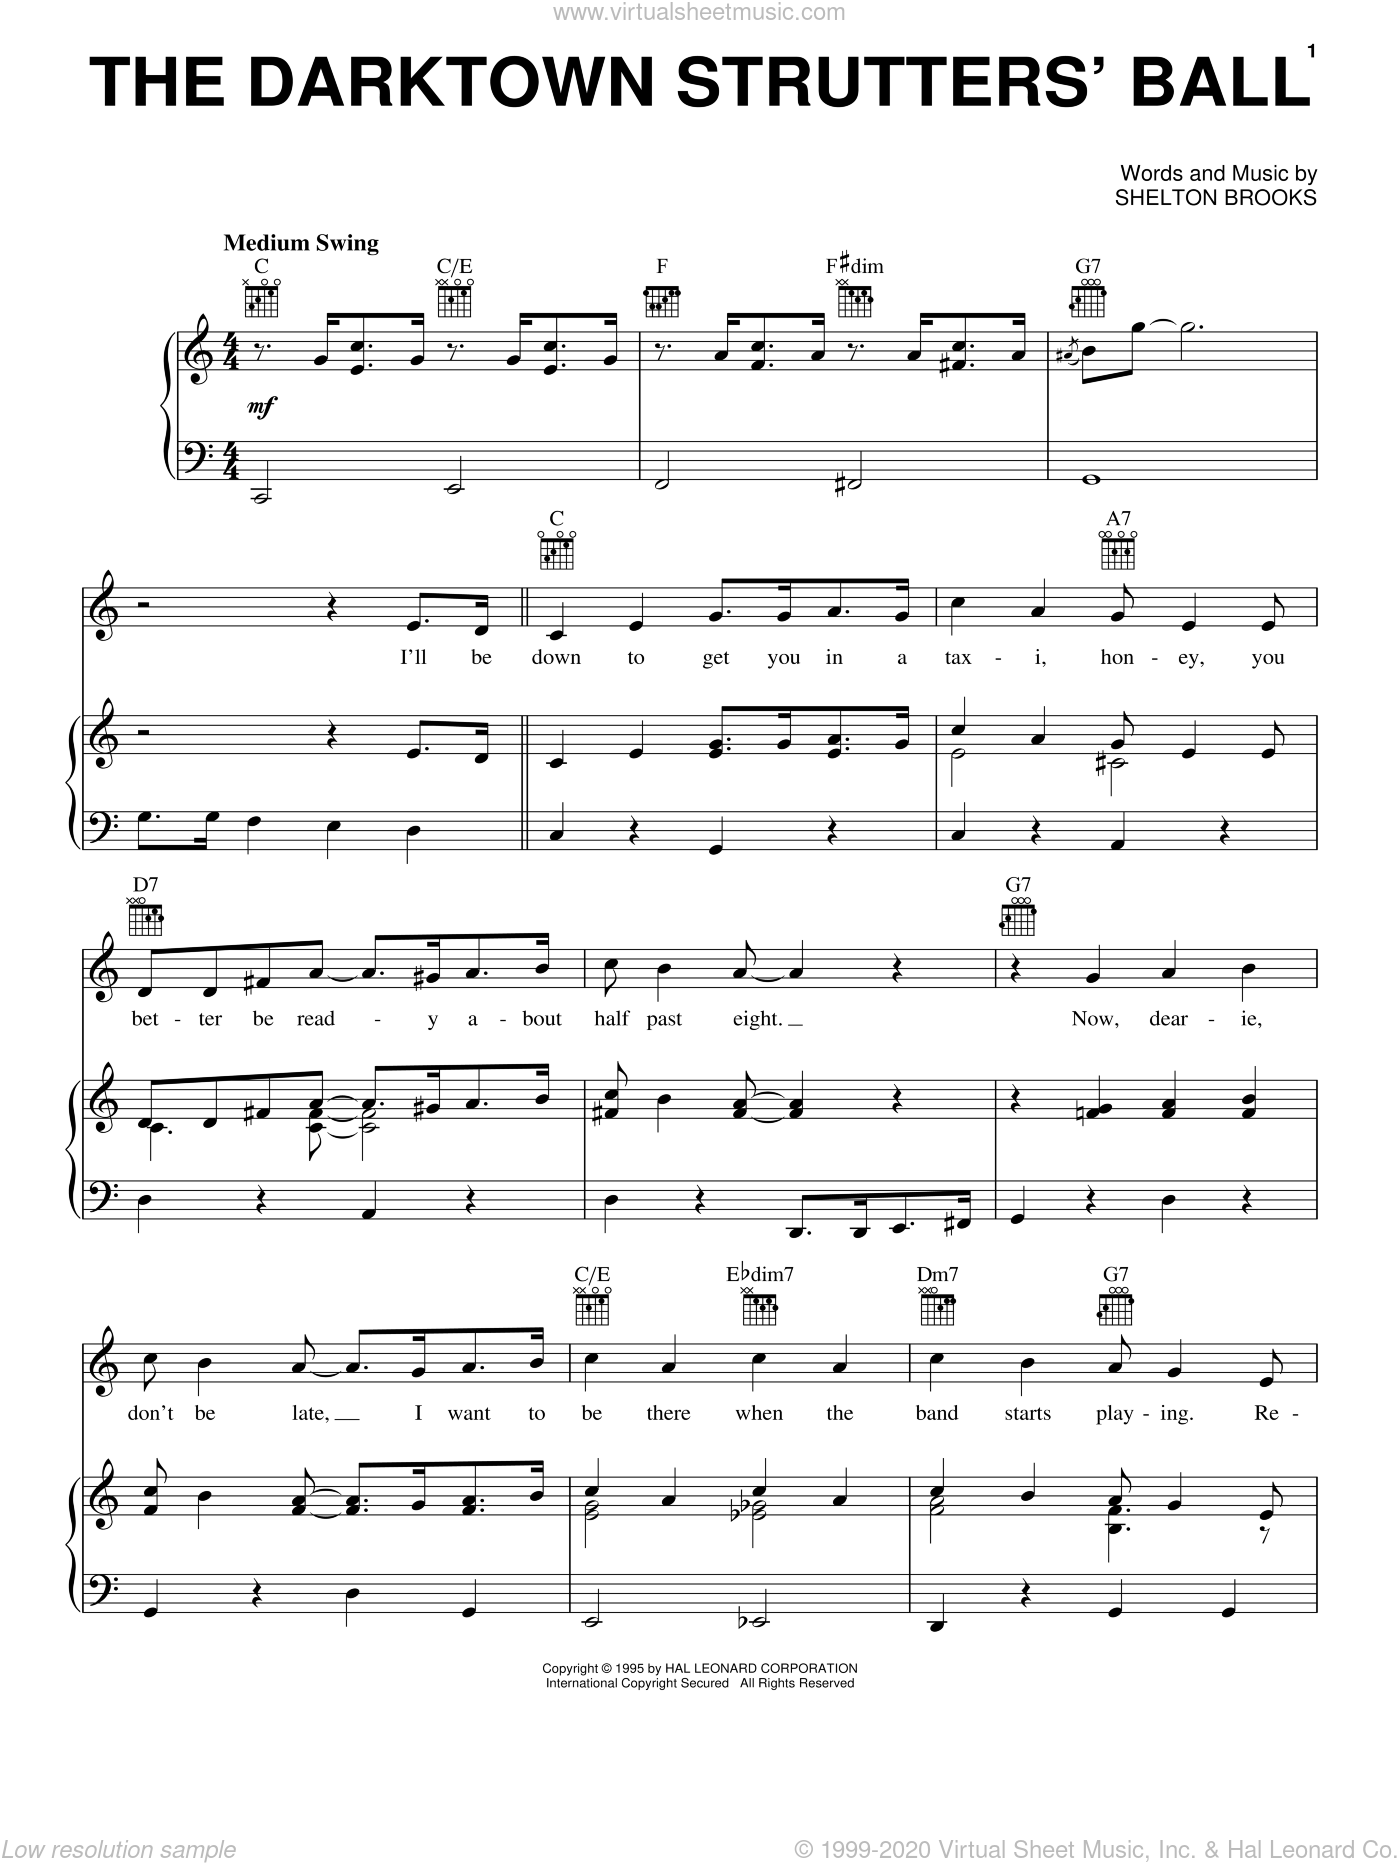 The Darktown Strutters' Ball sheet music for voice, piano or guitar by Shelton Brooks